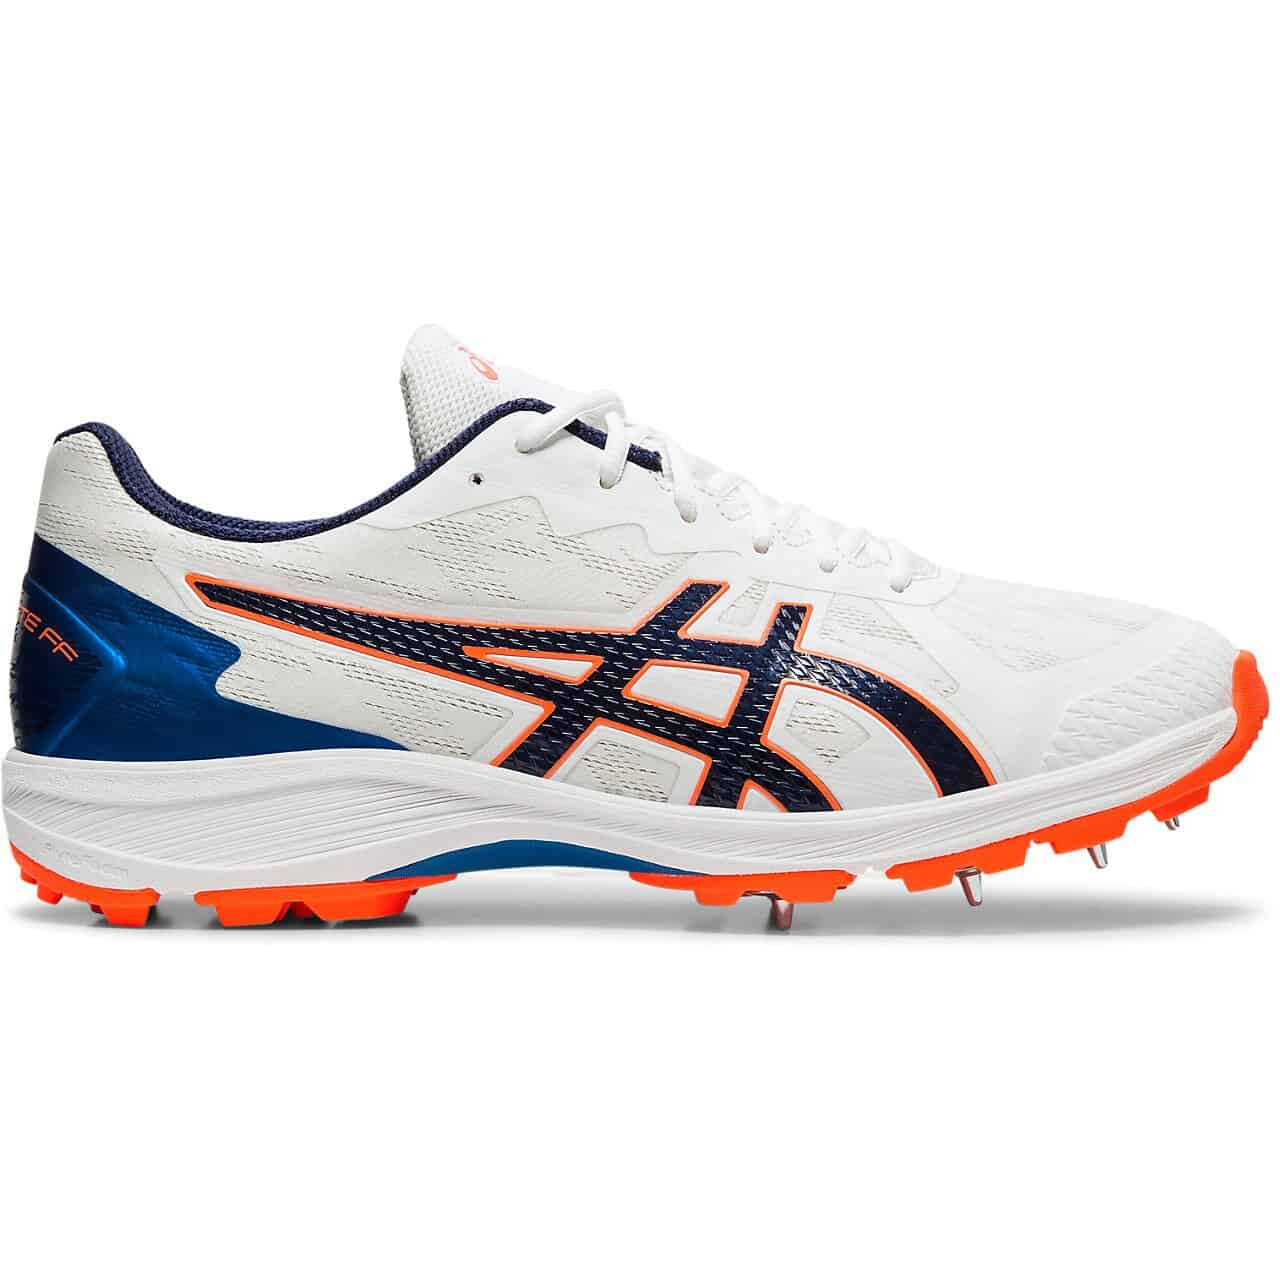 Strike Rate FF Asics Cricket Shoe